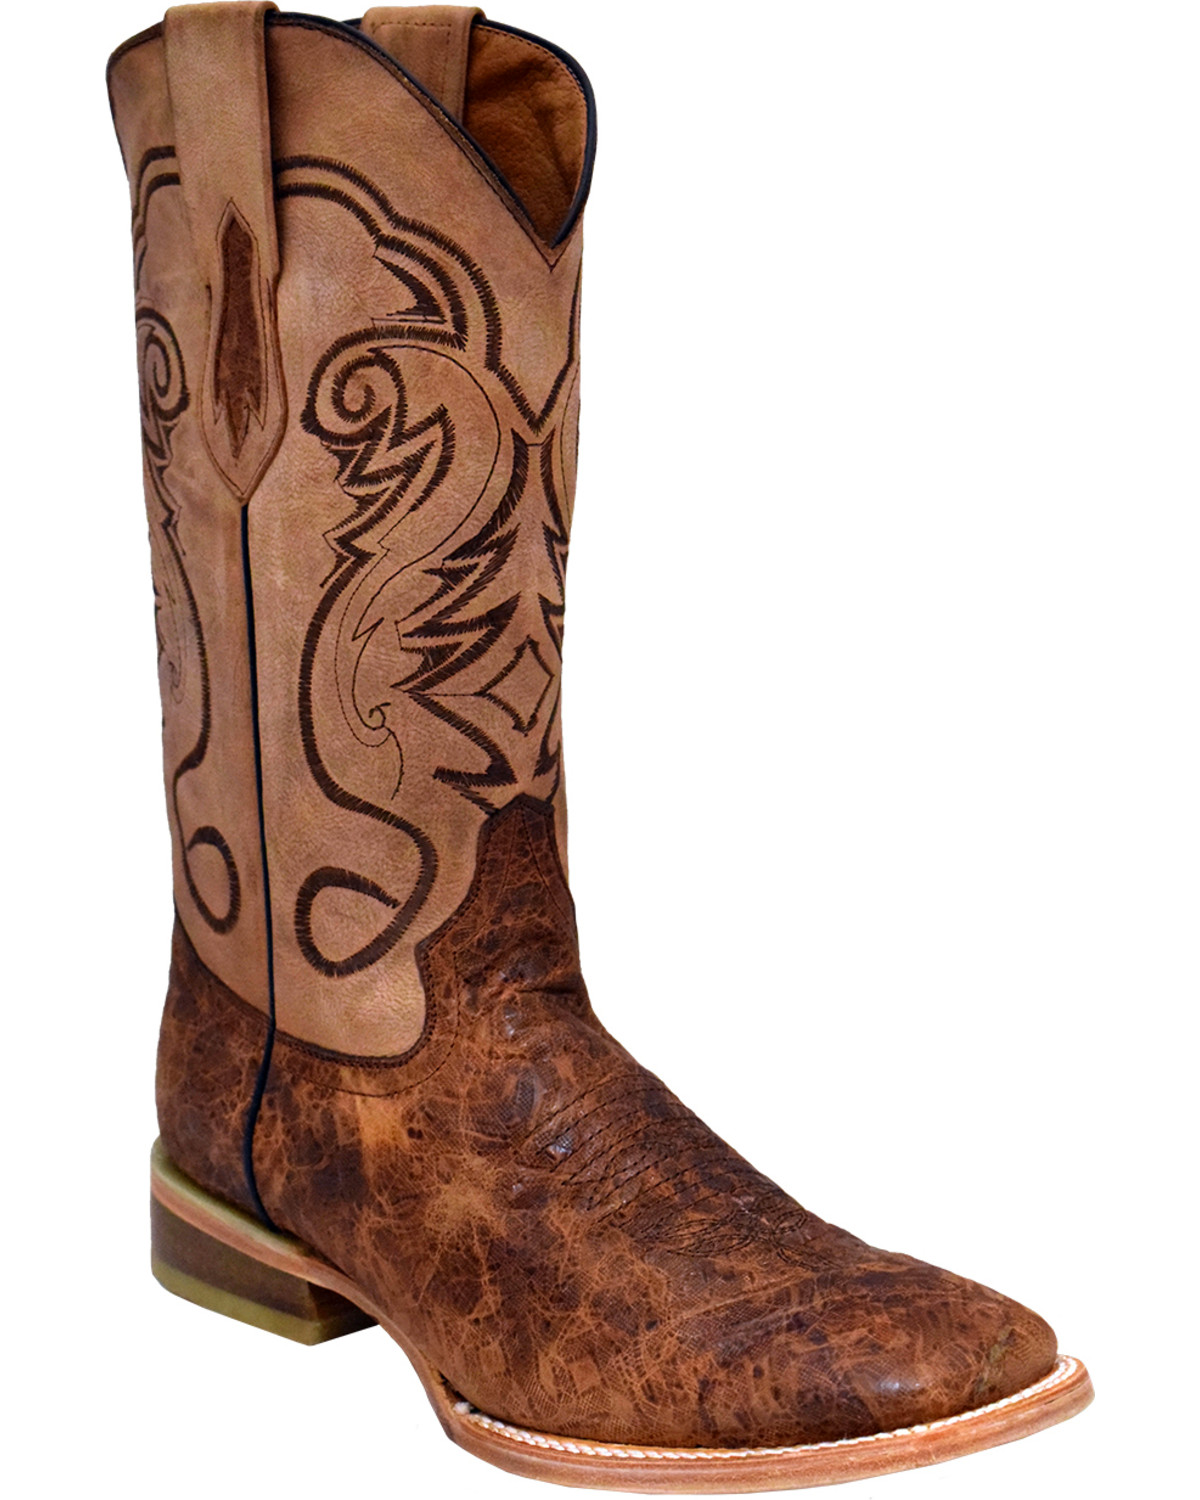 Men's Argentinian Bullhide ACERO Cowboy Boot Square Toe Chocolate 13 D(M) US